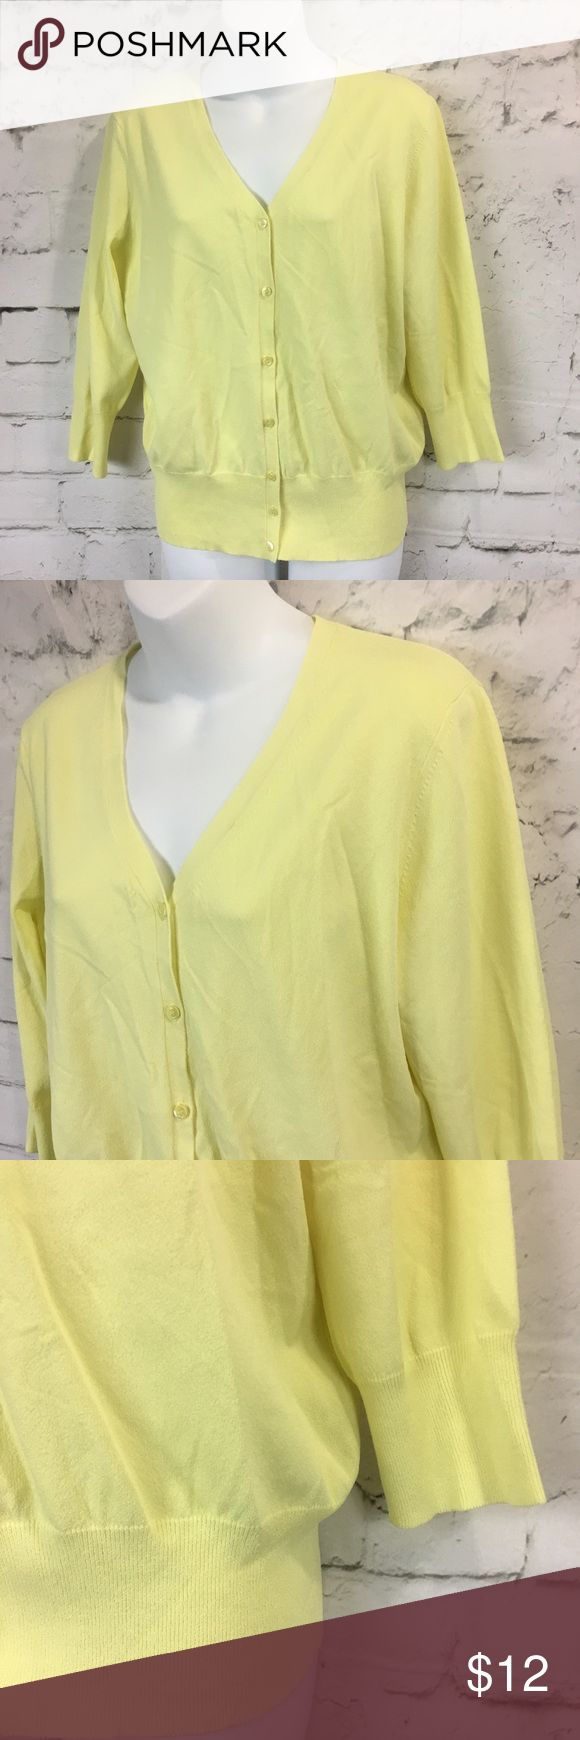 """Ann Taylor Womens V Neck Button Front Cardigan Ann Taylor Womens Size XL V Neck Button Front Cardigan Lemon Yellow 3/4 Sleeve Perfect Easter Spring Cardigan Nice Pre-Owned Condition, No Stains, No Holes  *Measurements are taken with garments laid flat and unstretched, please compare to your own garments for best fit*  Chest laid flat from pit to pit: 24"""" across  Length from shoulder to hem: 24""""  B1 Ann Taylor Tops Button Down Shirts"""